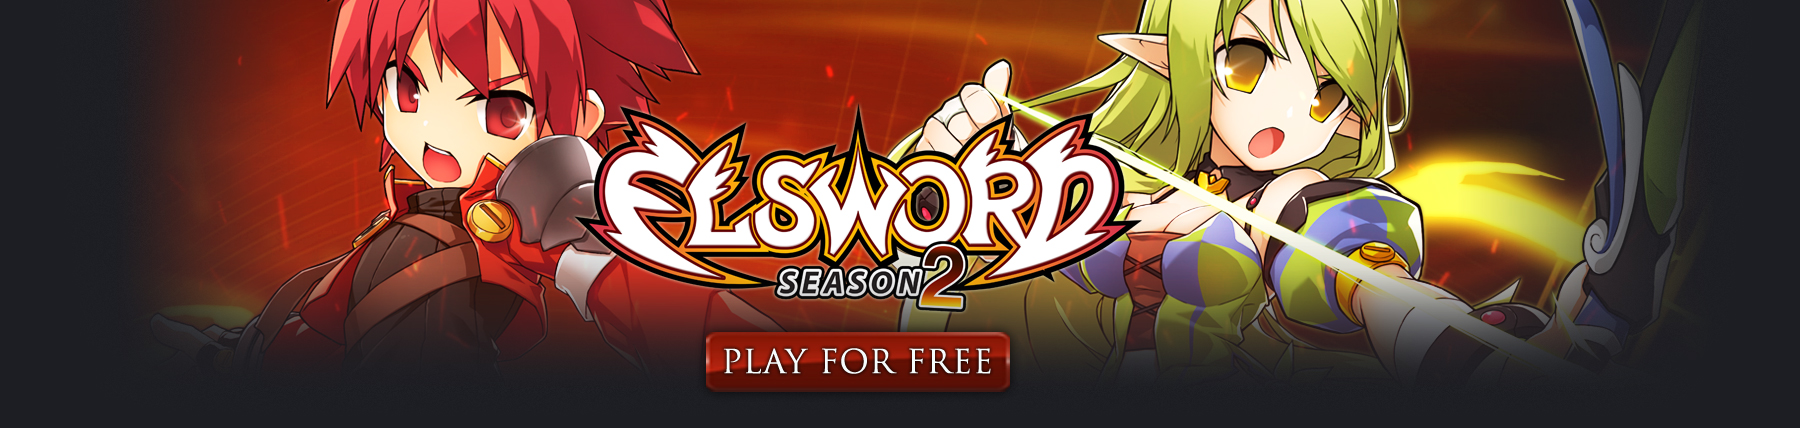 Elsword picture